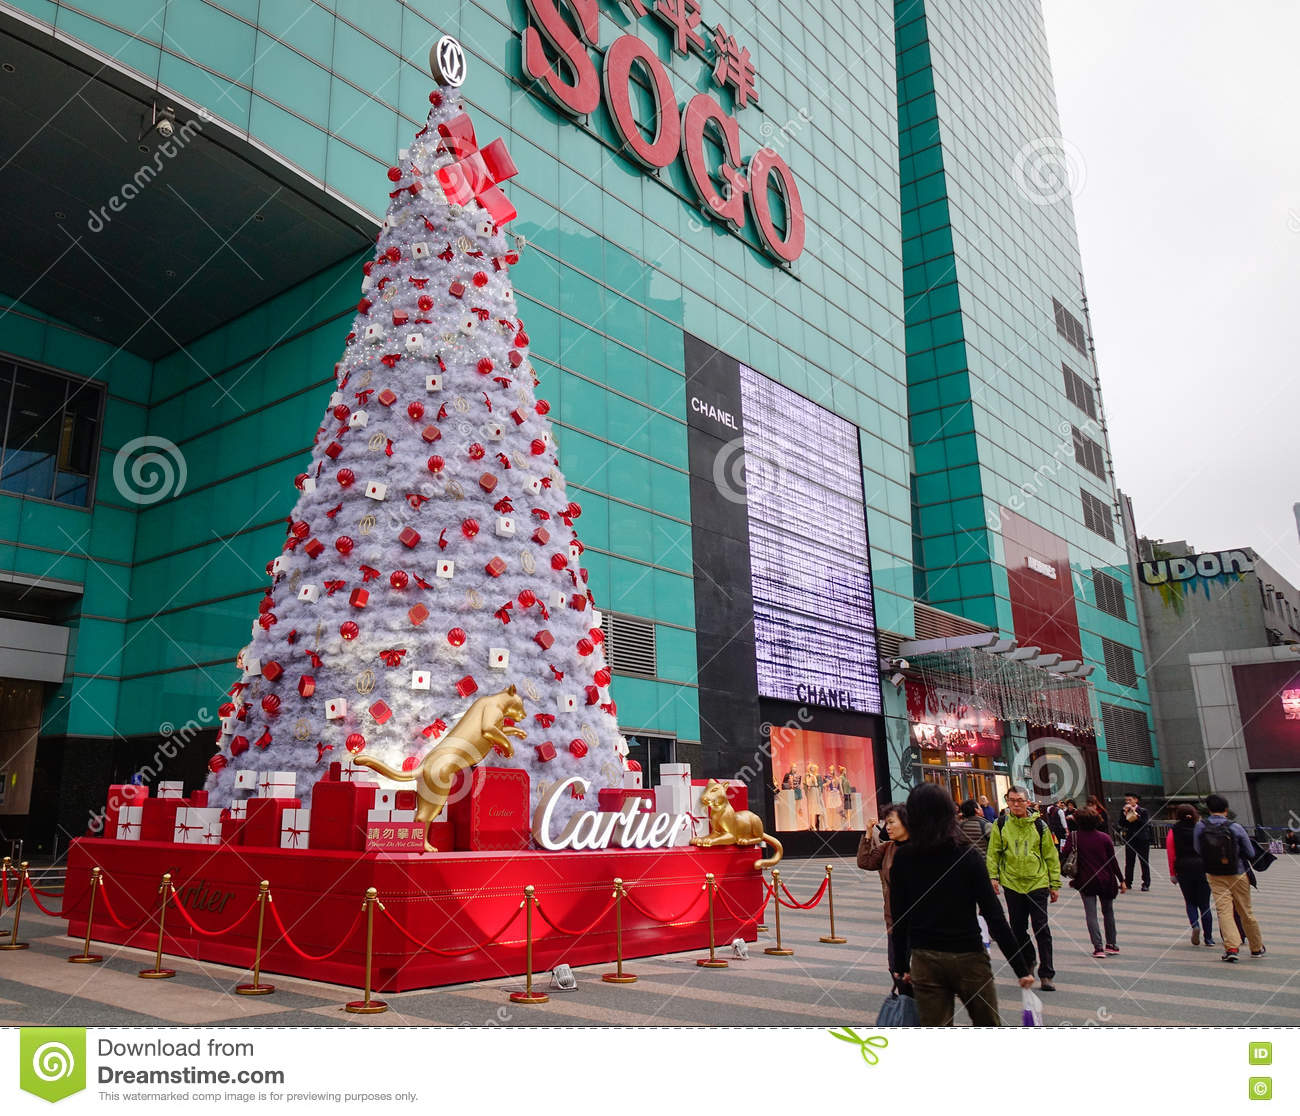 Christmas Decorations In Shopping Malls: Christmas Decorations At Sogo Shopping Mall In Taipei